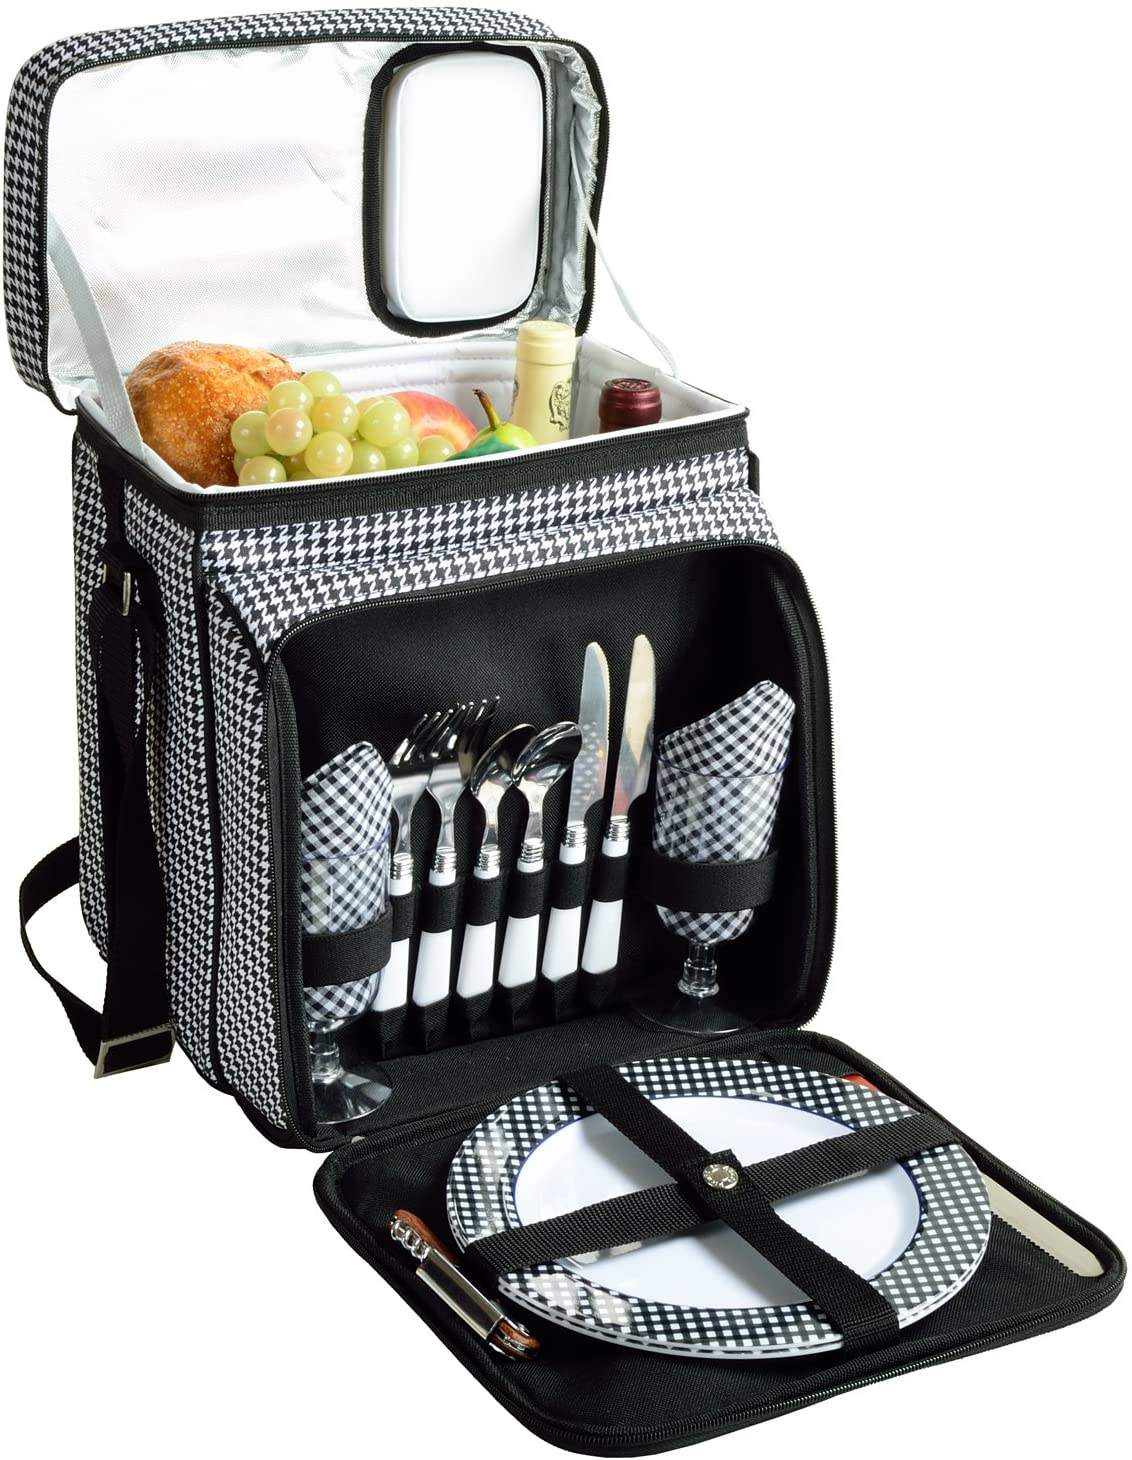 Original Insulated Picnic Basket Equipped with dinner service for 2 person